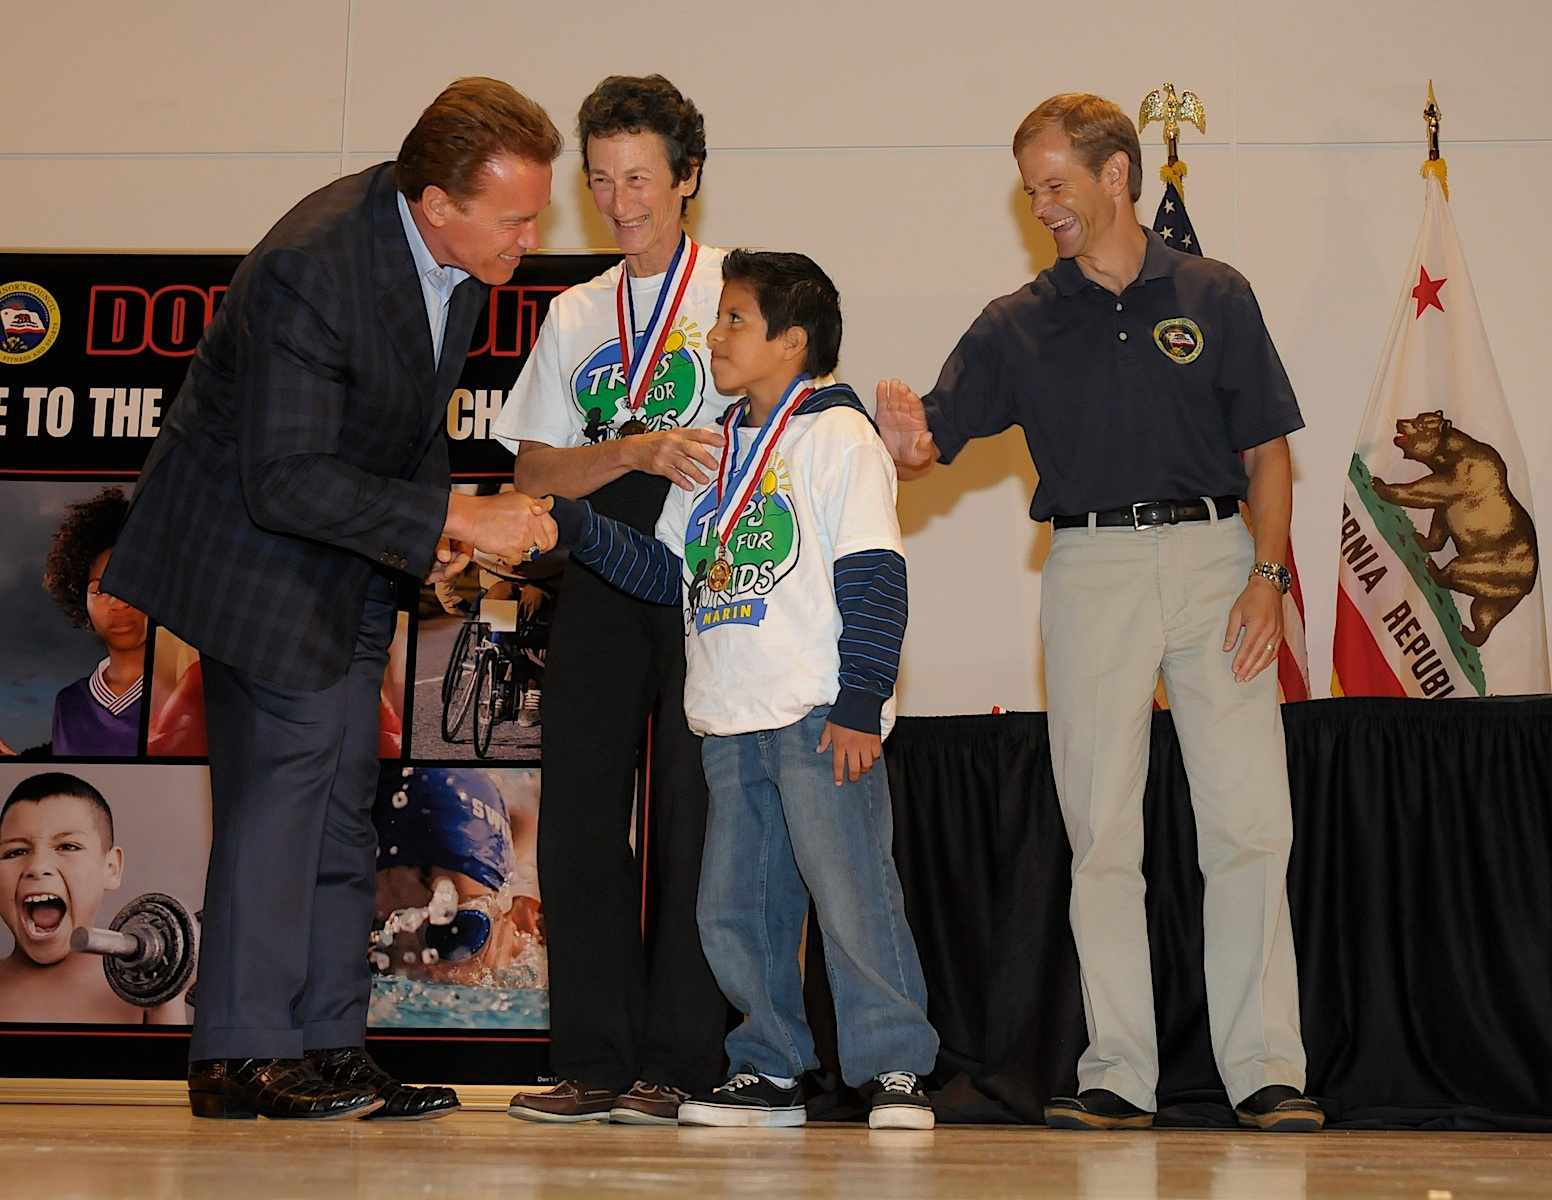 California governor Arnold Arnold Schwarzenegger presents award to Trips for Kids founder Marilyn Price and a student.